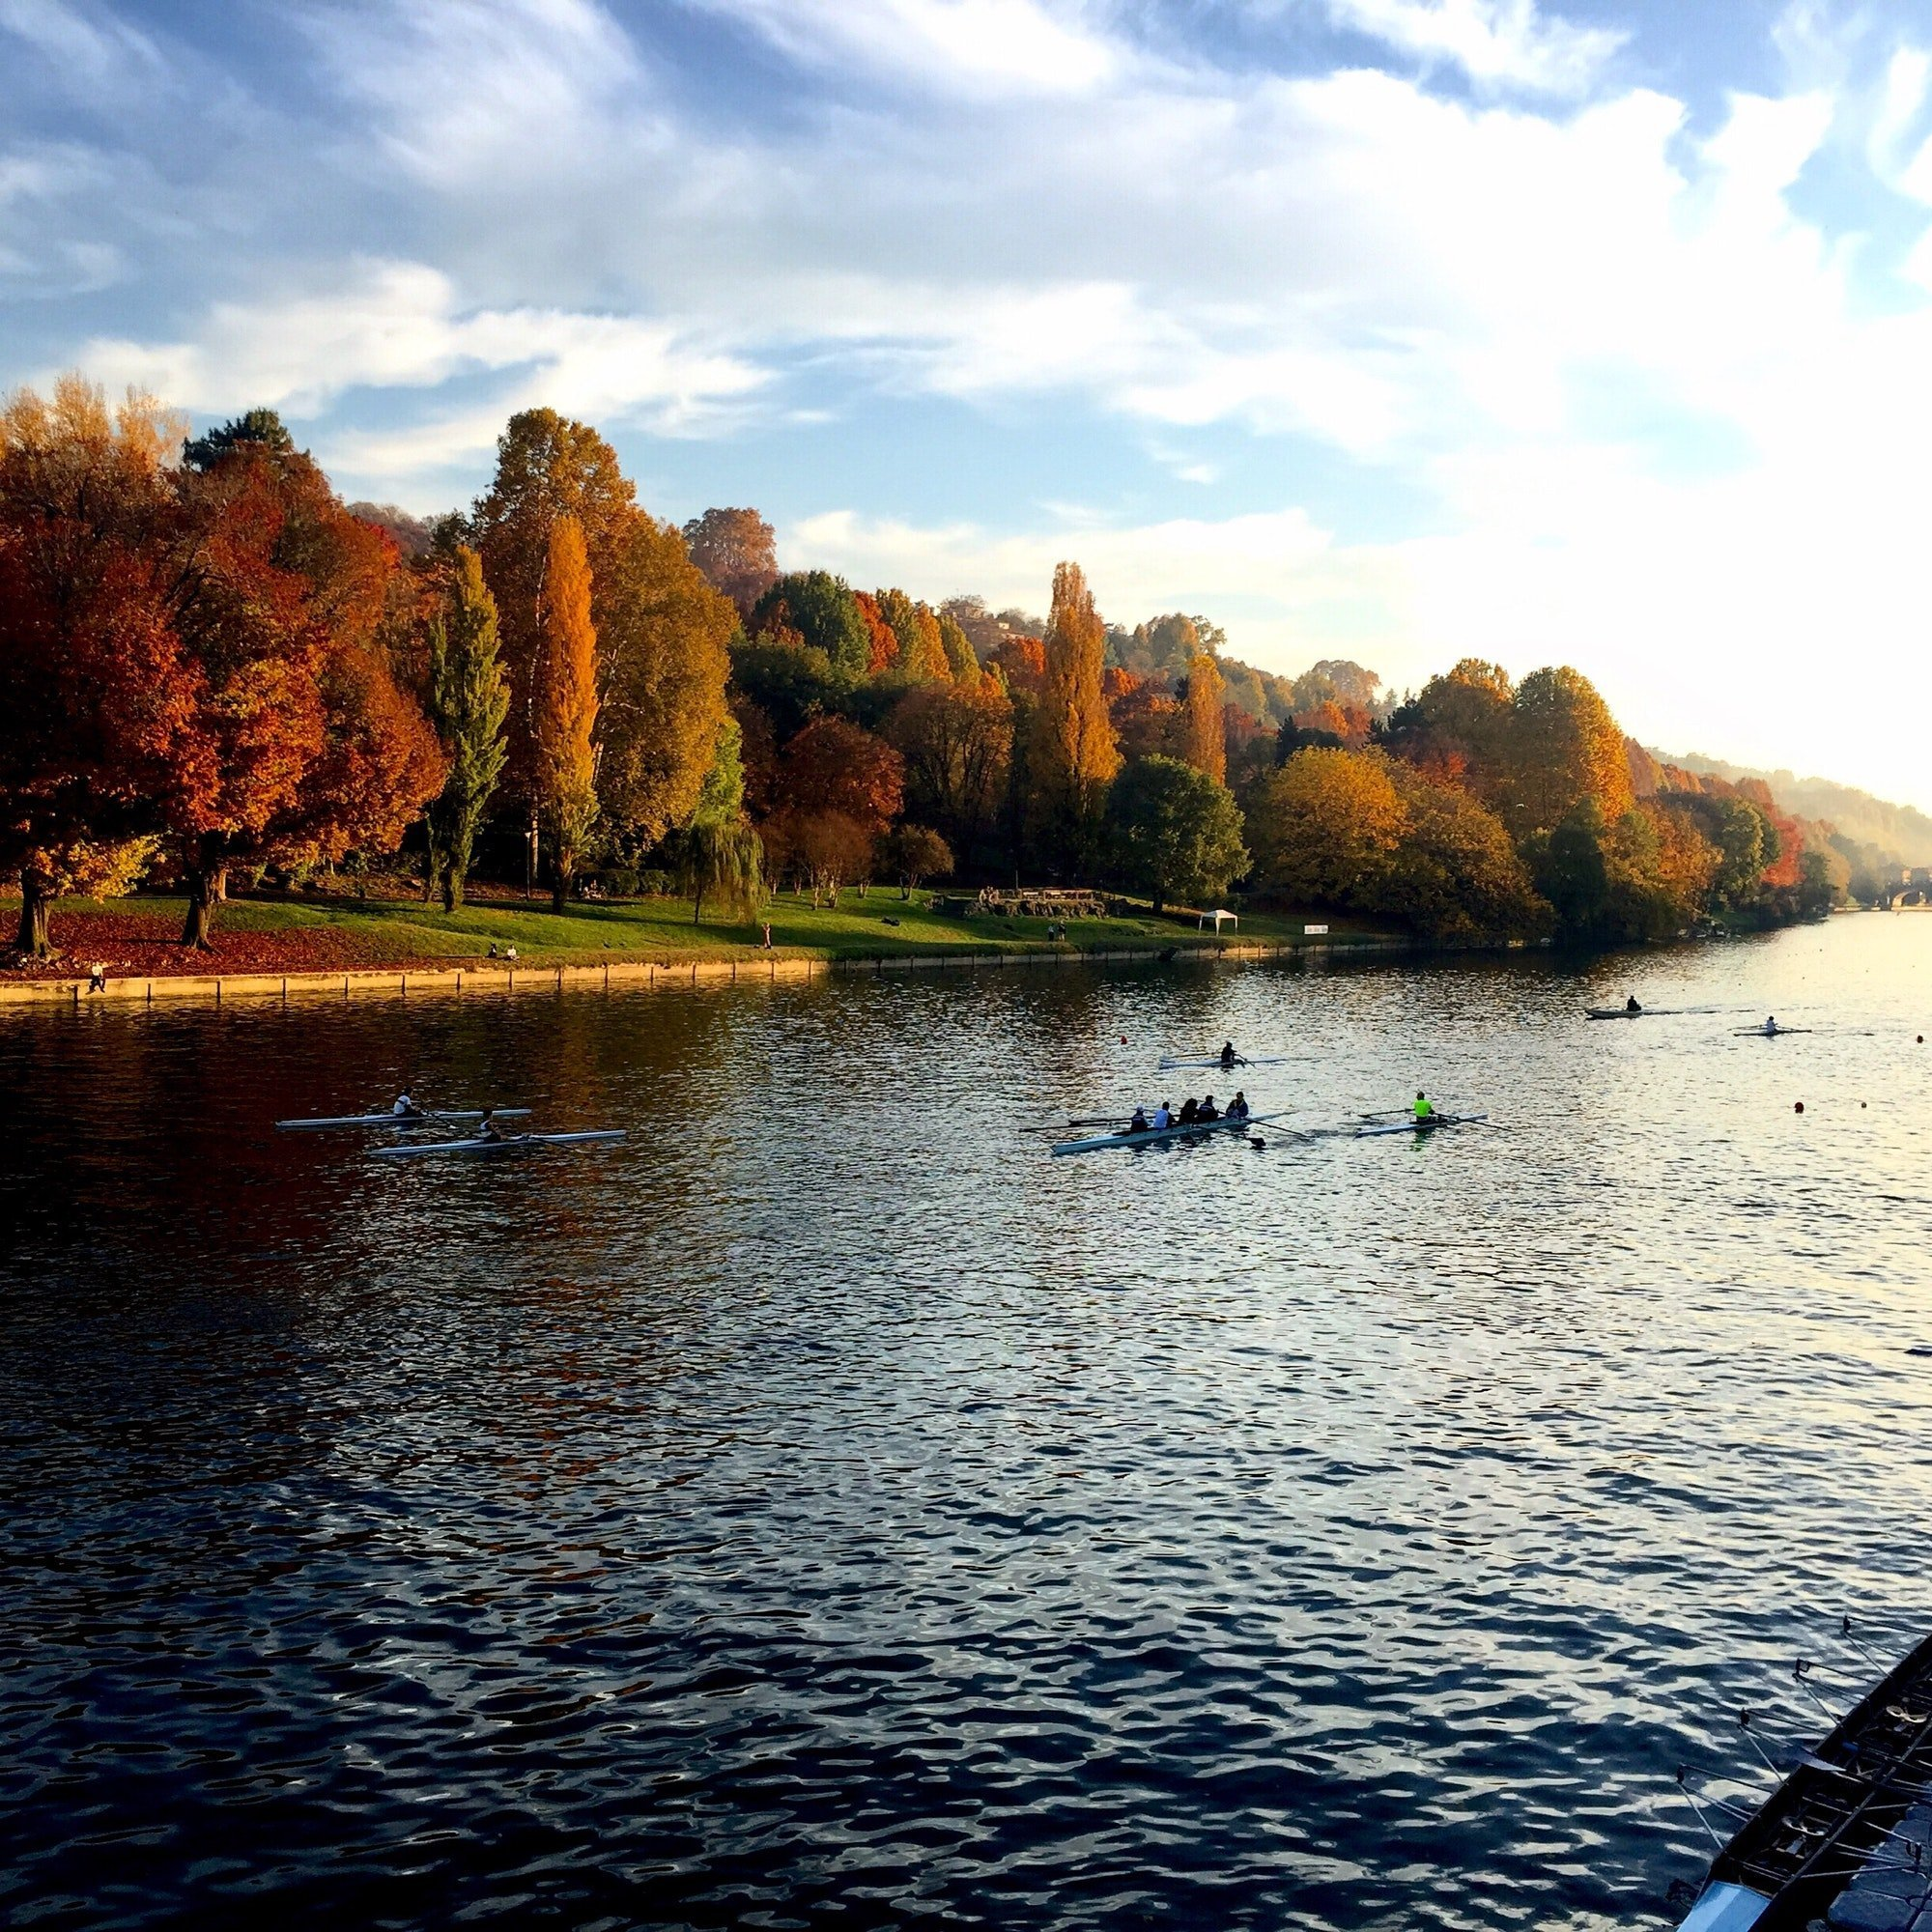 Rowing on the Po,Autumn in Torino